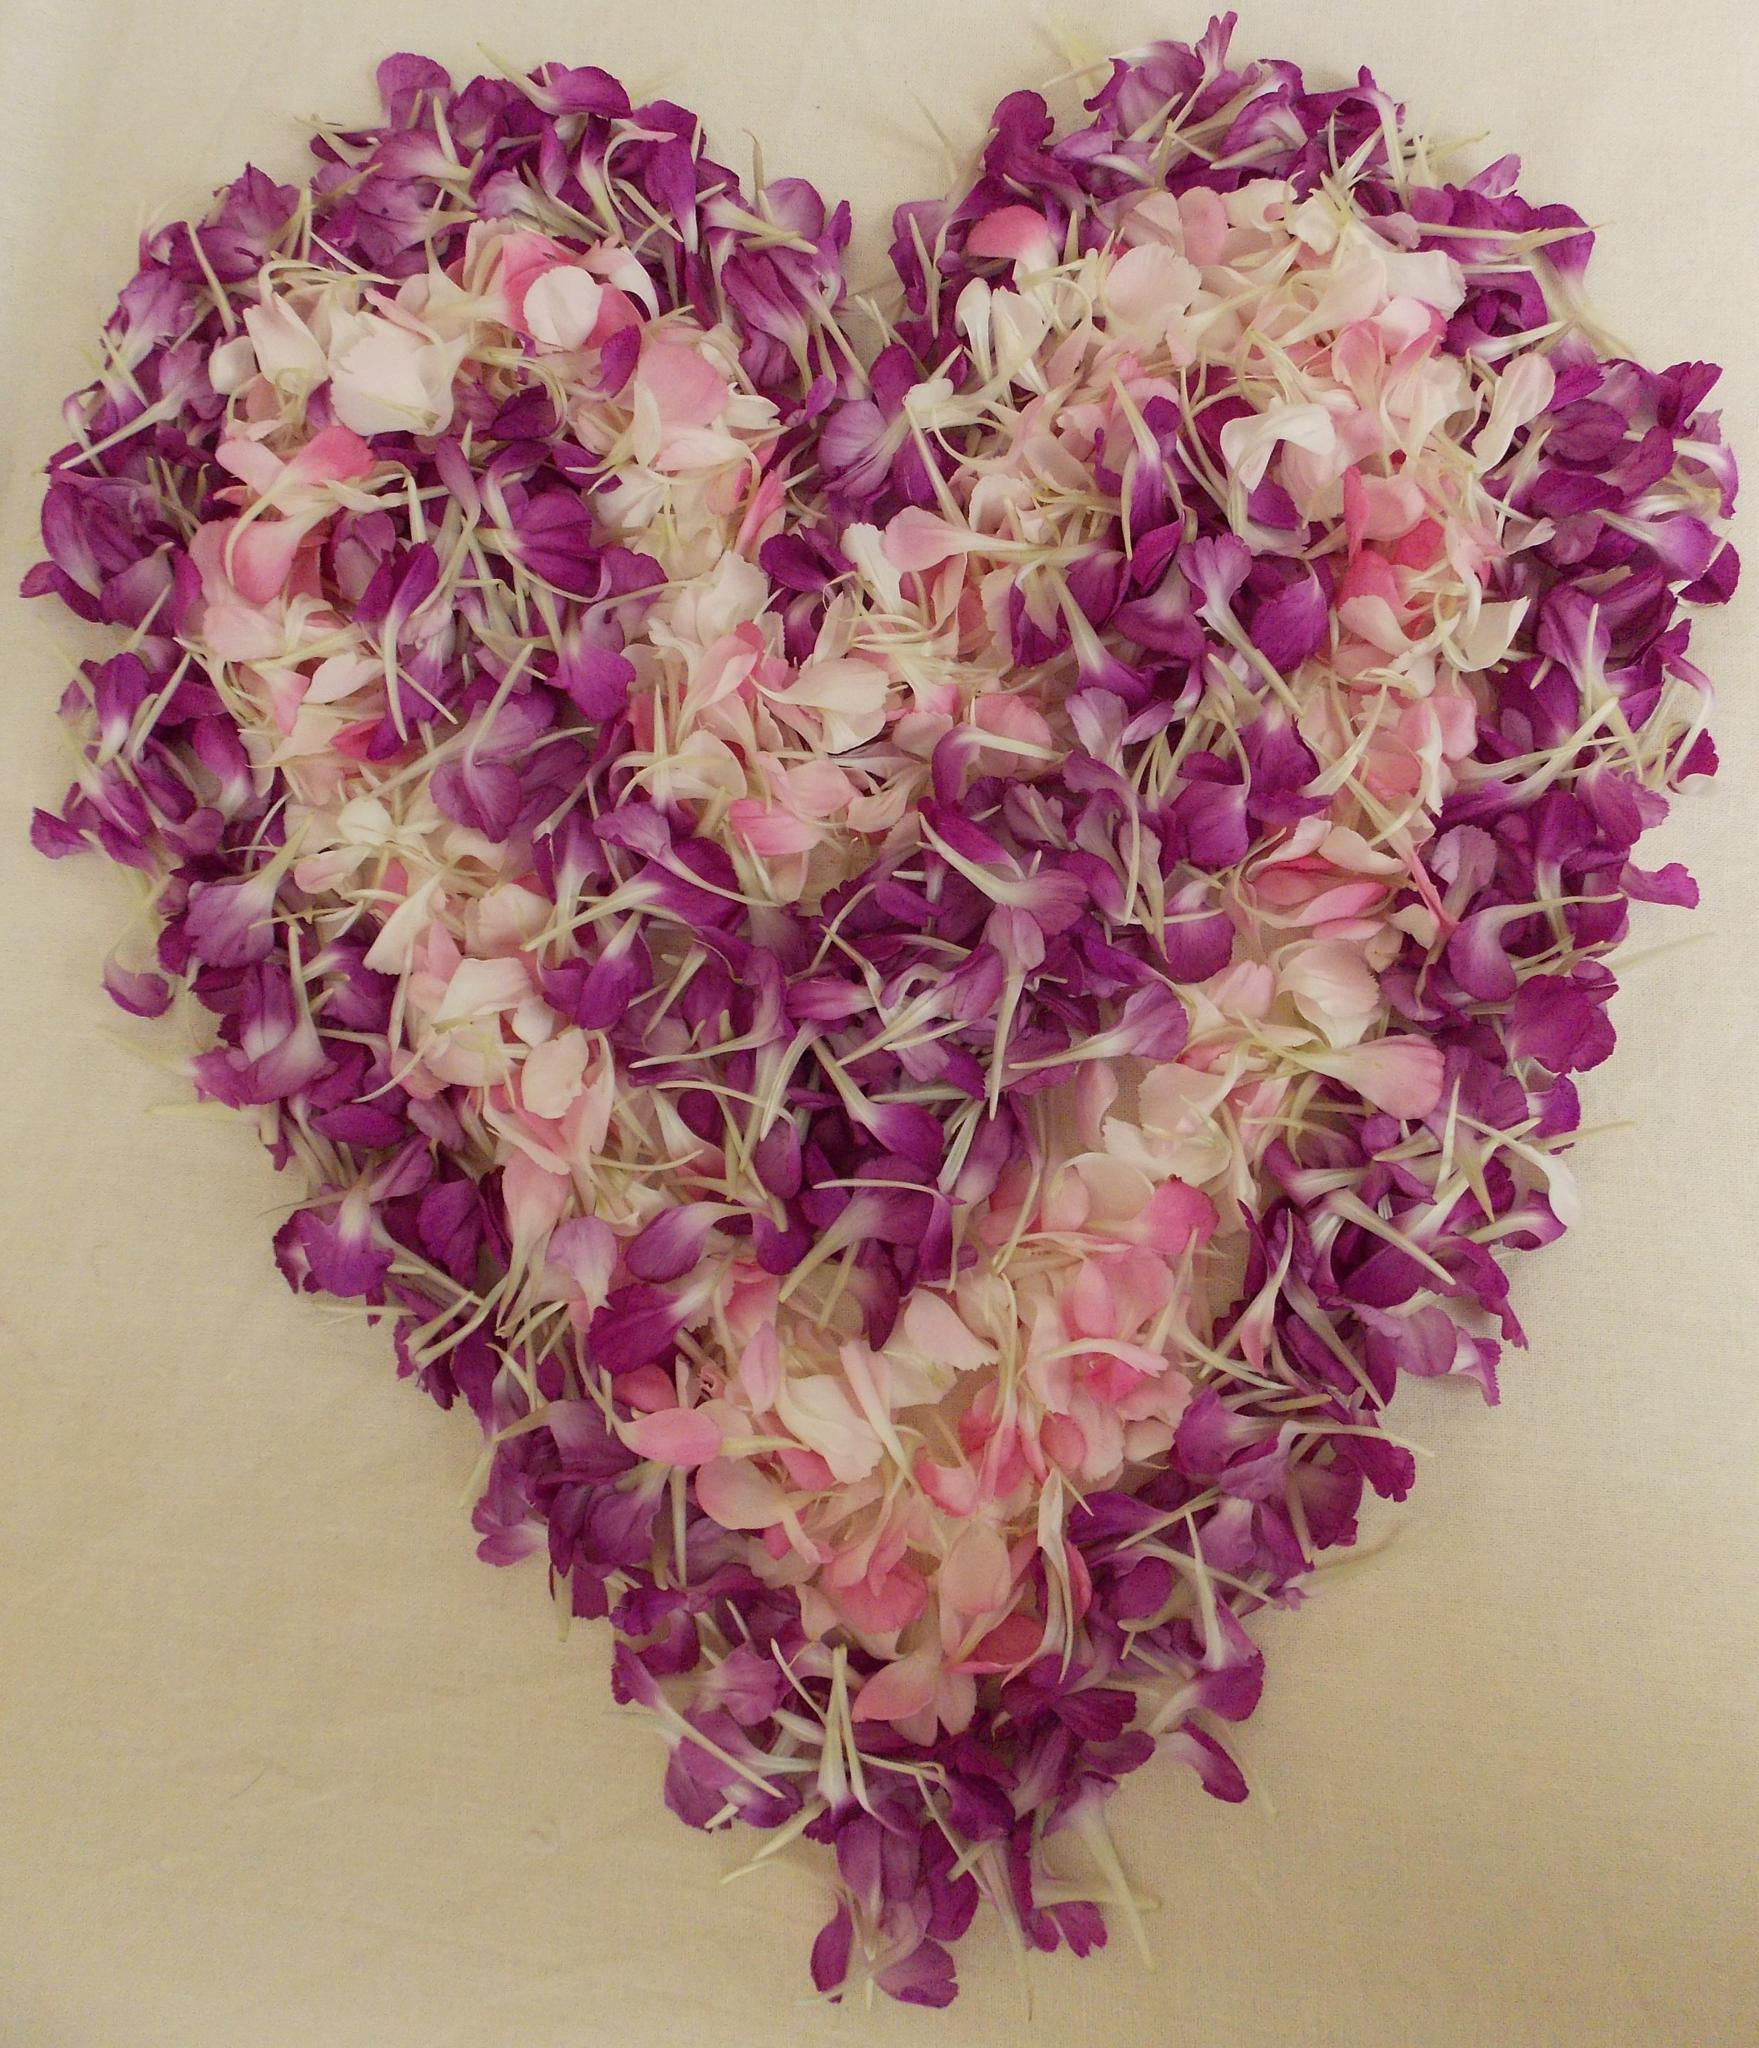 Heart Petals by Esther Allberry